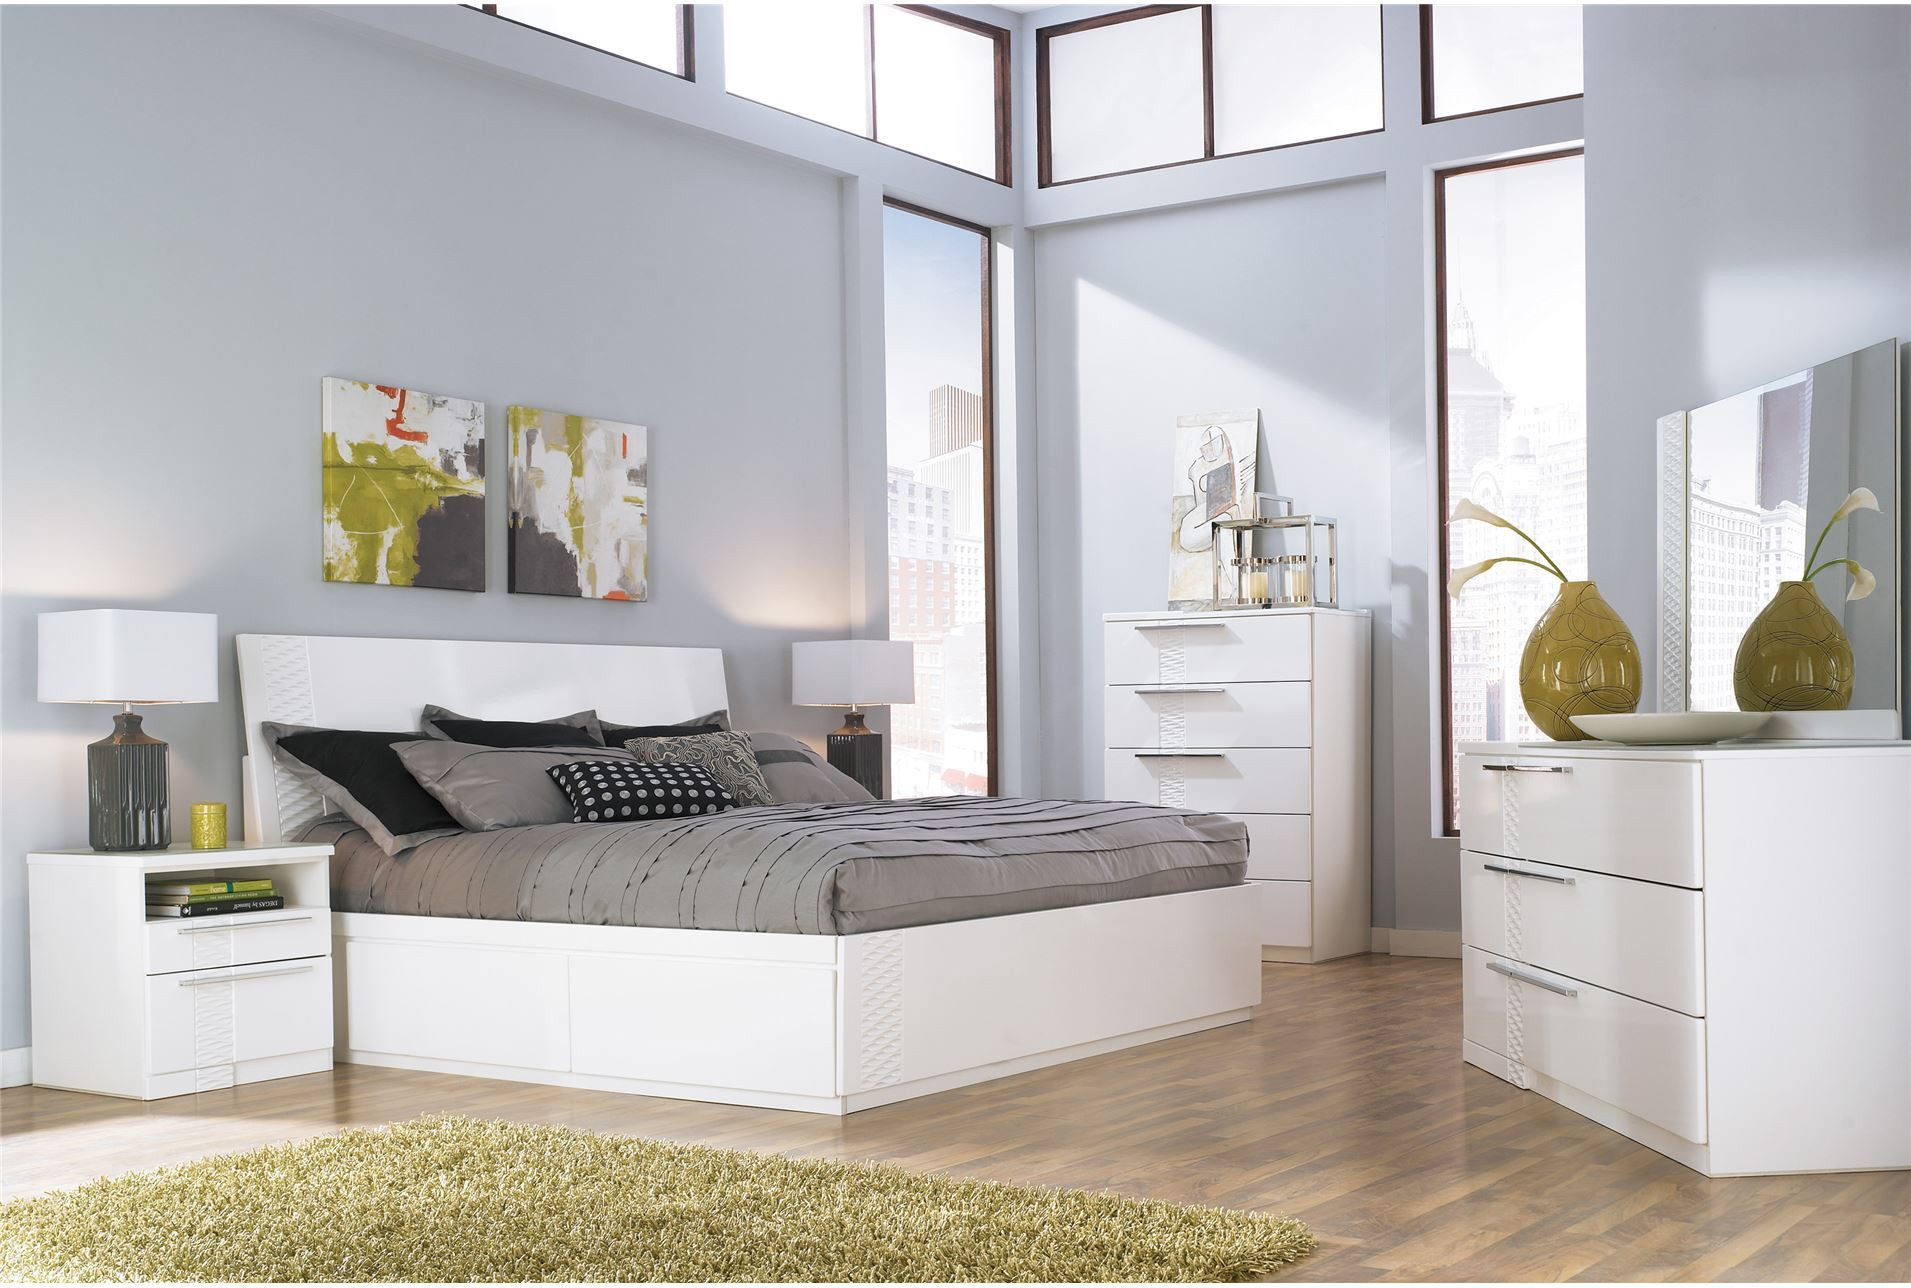 Best ideas about White Queen Bedroom Set . Save or Pin 7 Beautiful White Queen Size Beds From US Stores Cute Now.